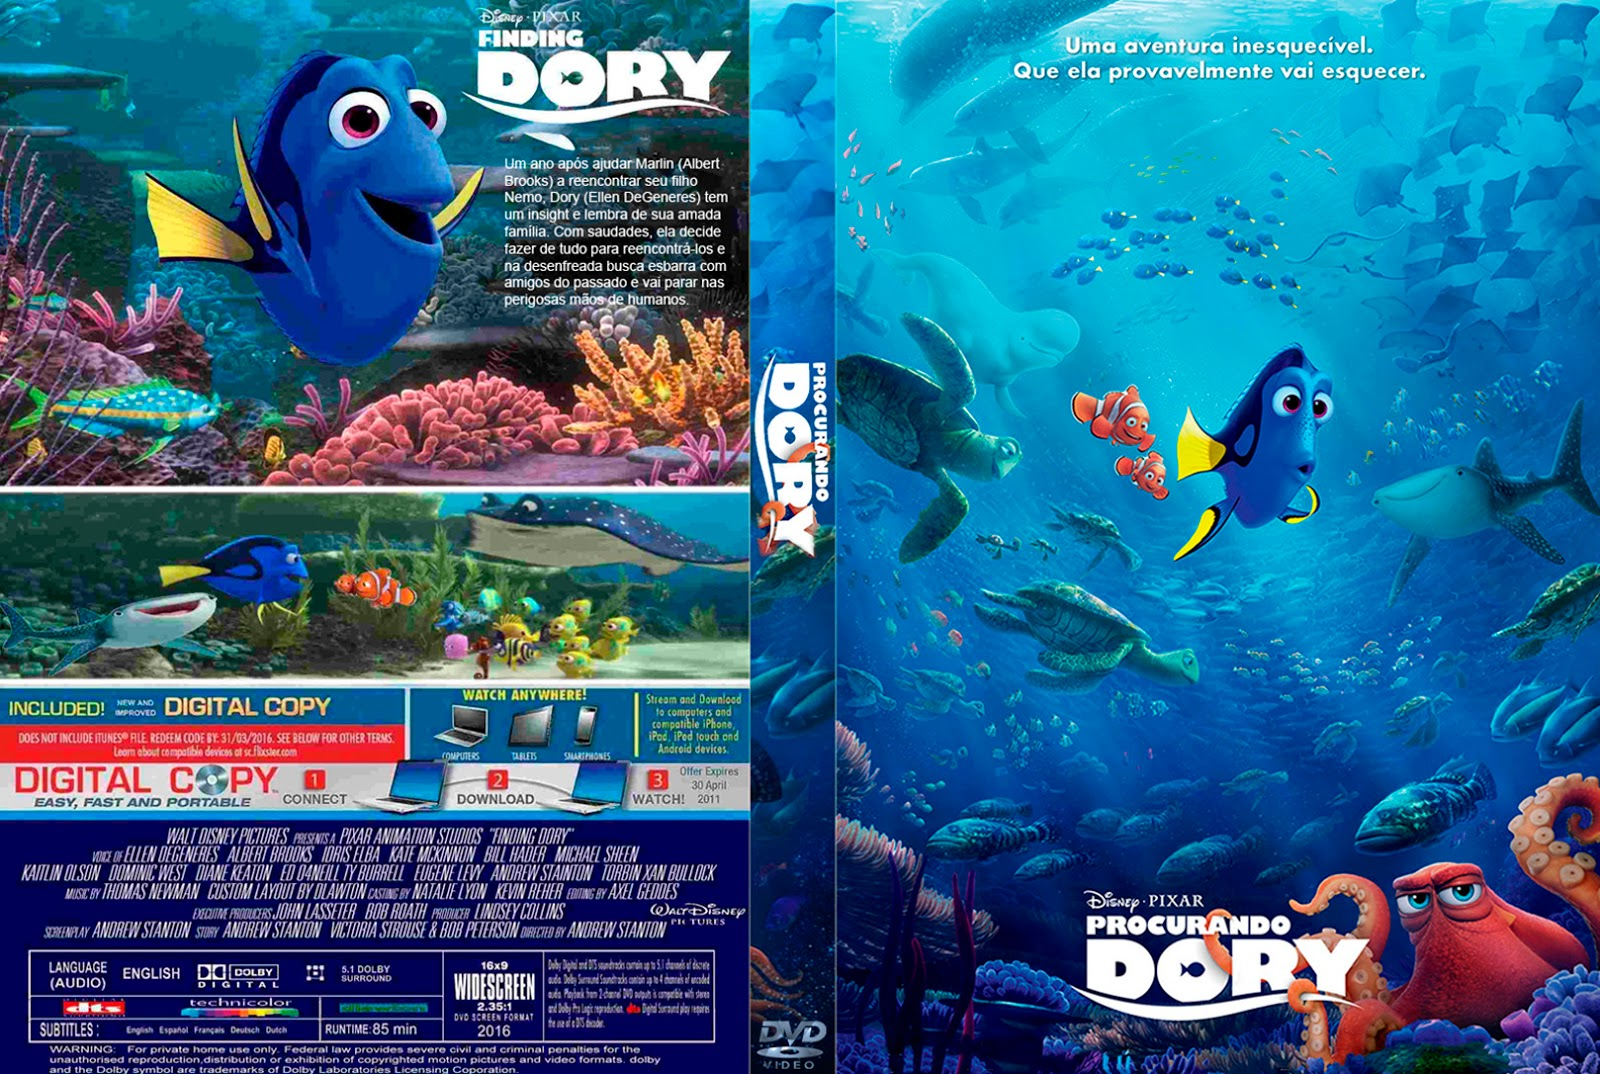 Download Procurando Dory DVD-R Download Procurando Dory DVD-R Procurando 2BDory 2B  2BCAPA 2B2